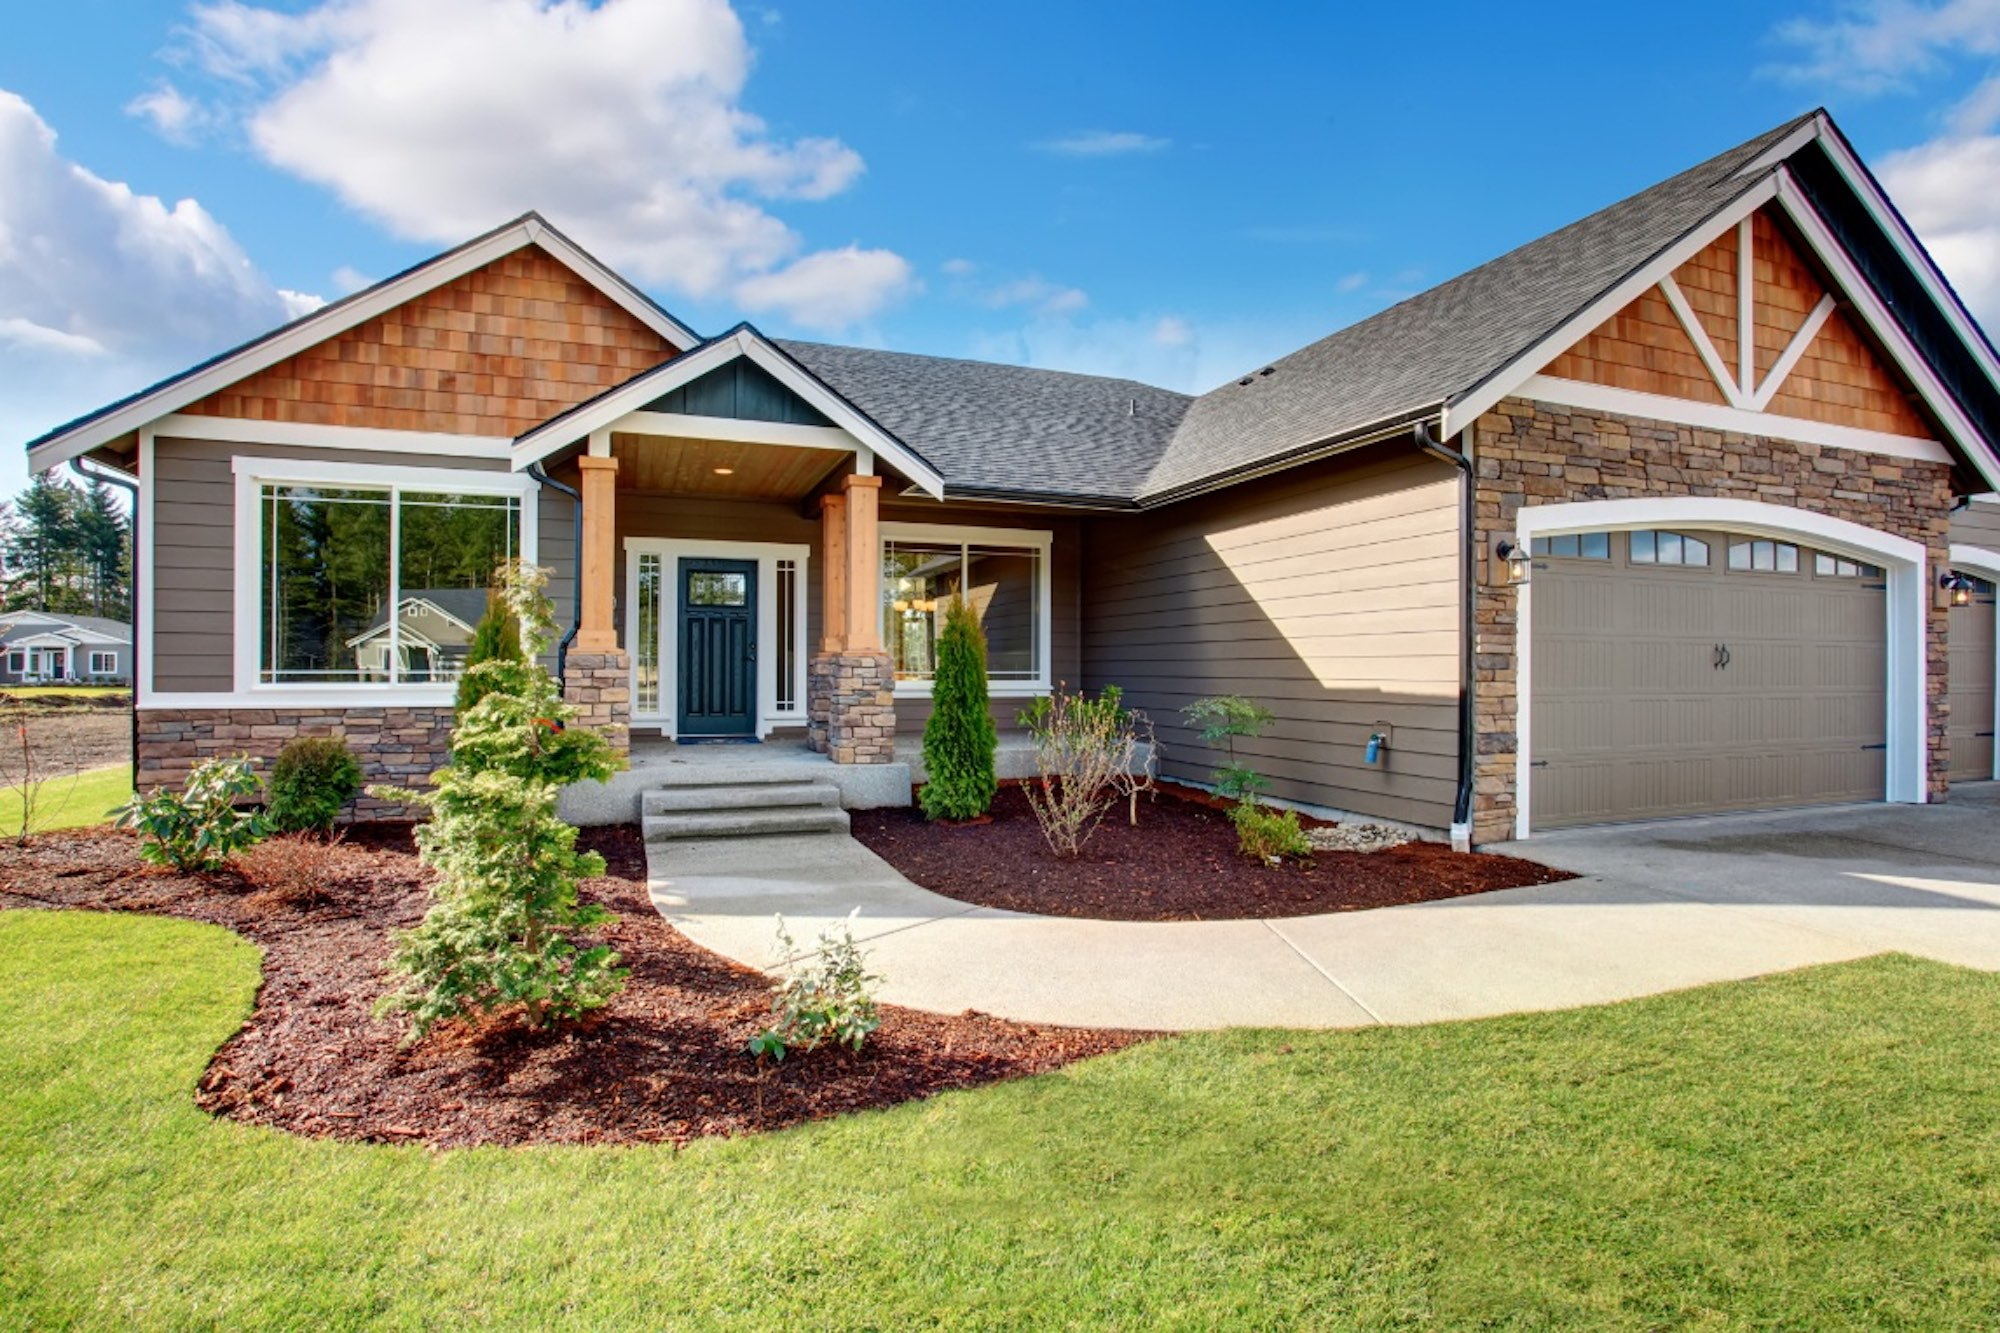 Read on for a list of eight pro tips that will have the outside of your home sparkling clean in no time.